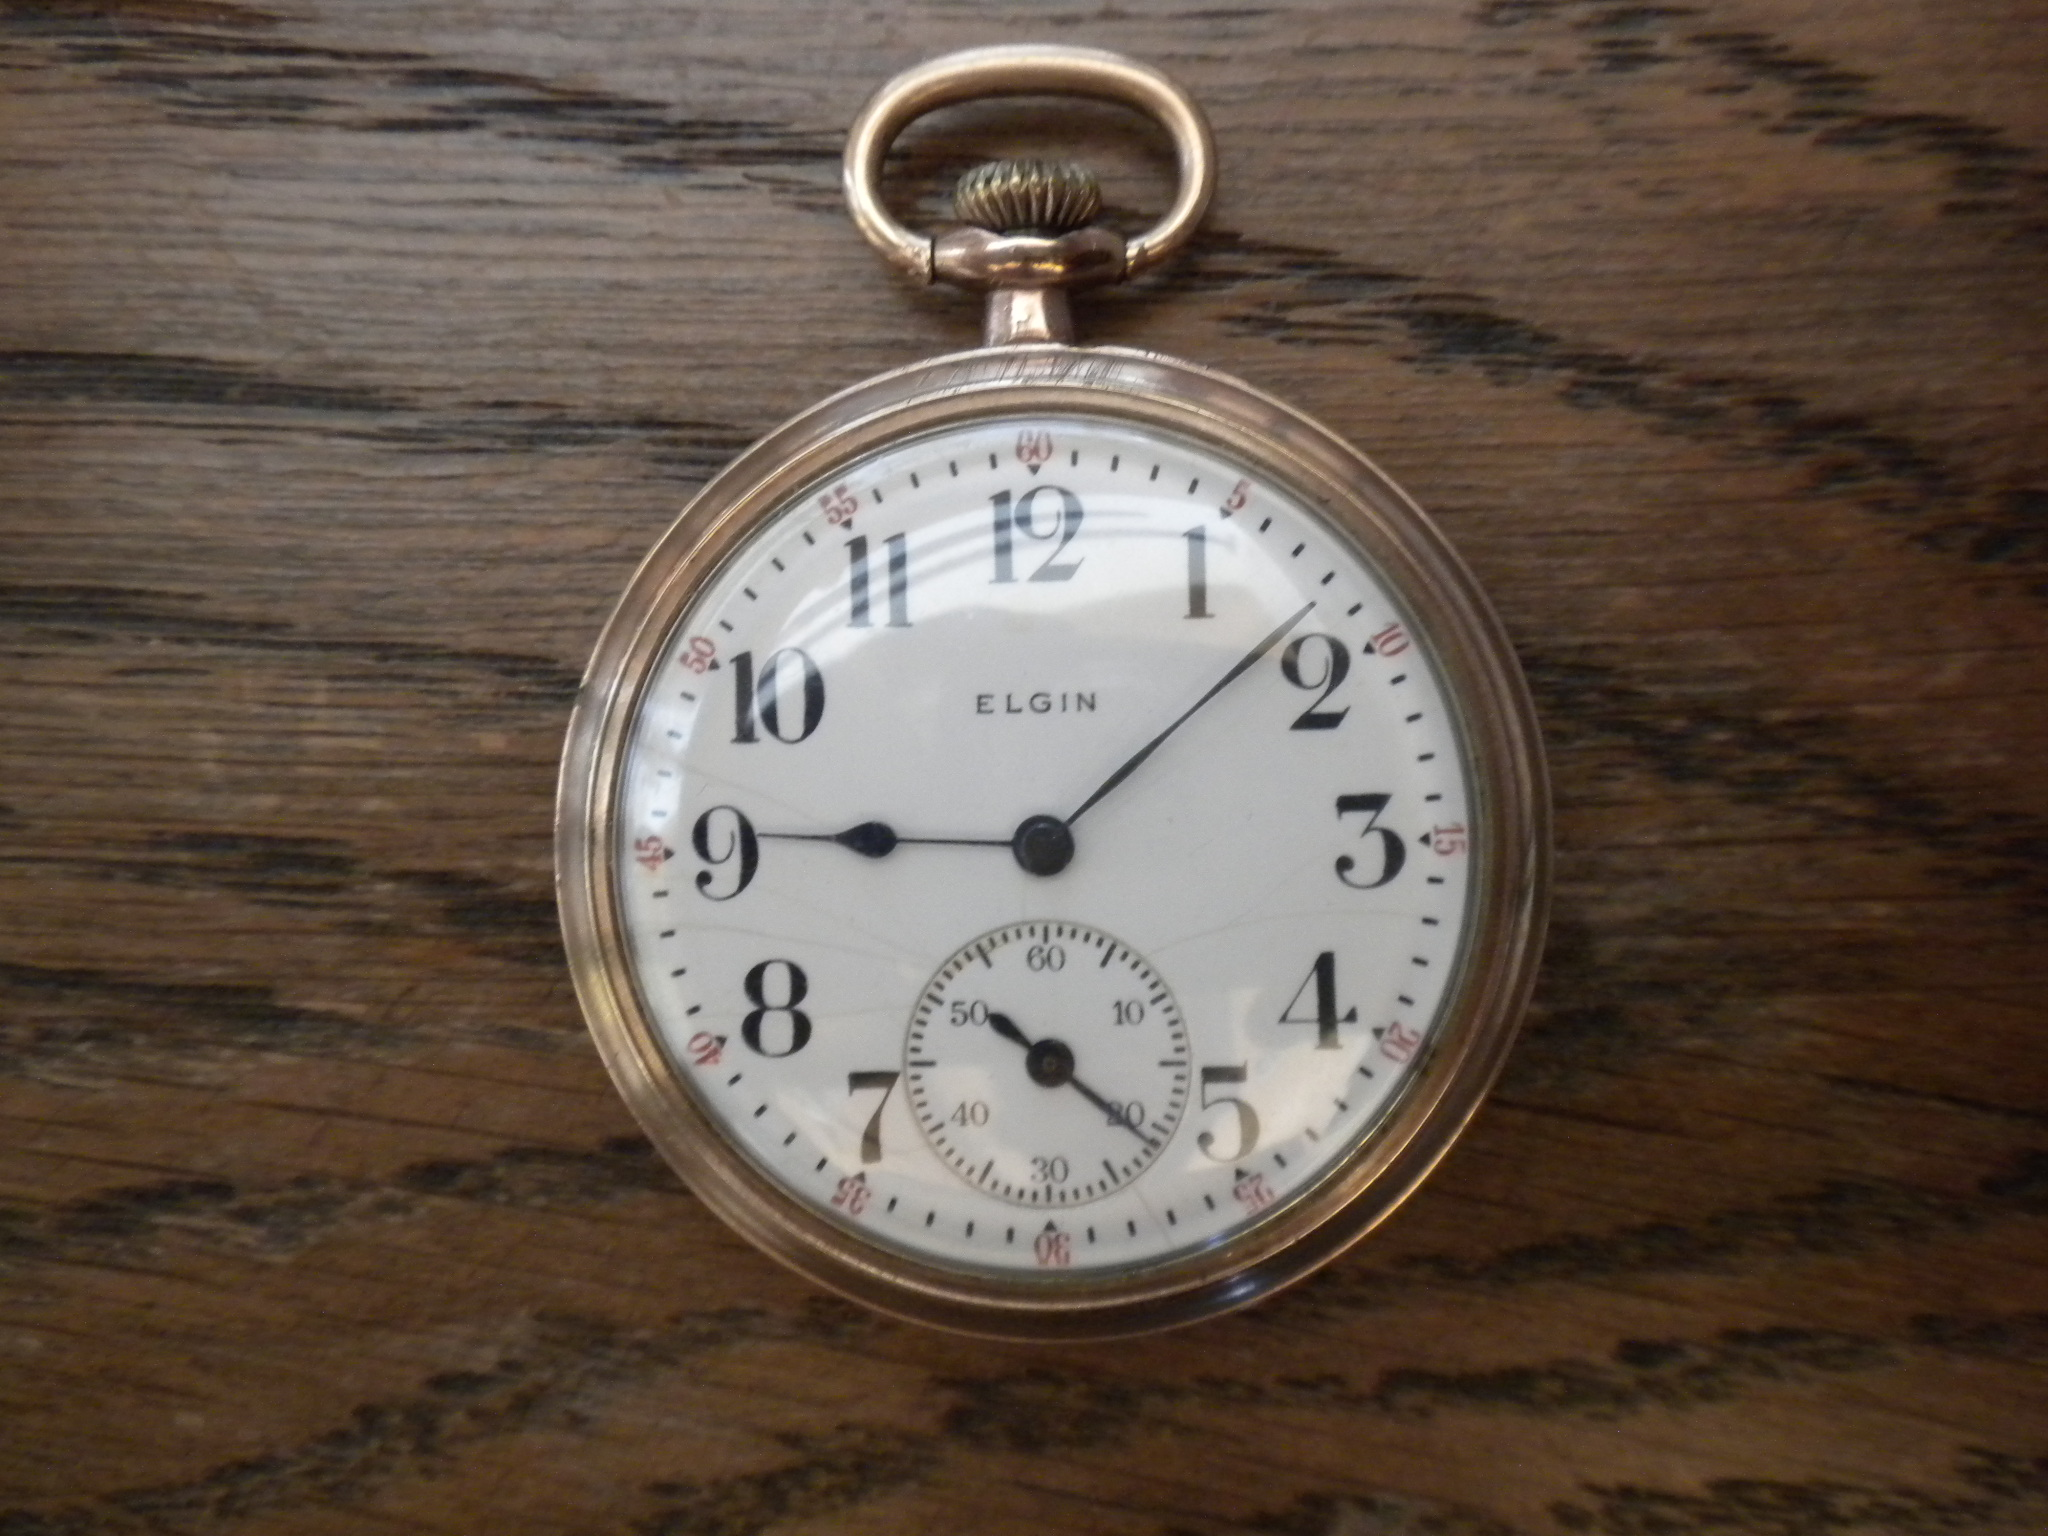 How Much Is My Elgin Pocket Watch Worth S 20264392 Not Running